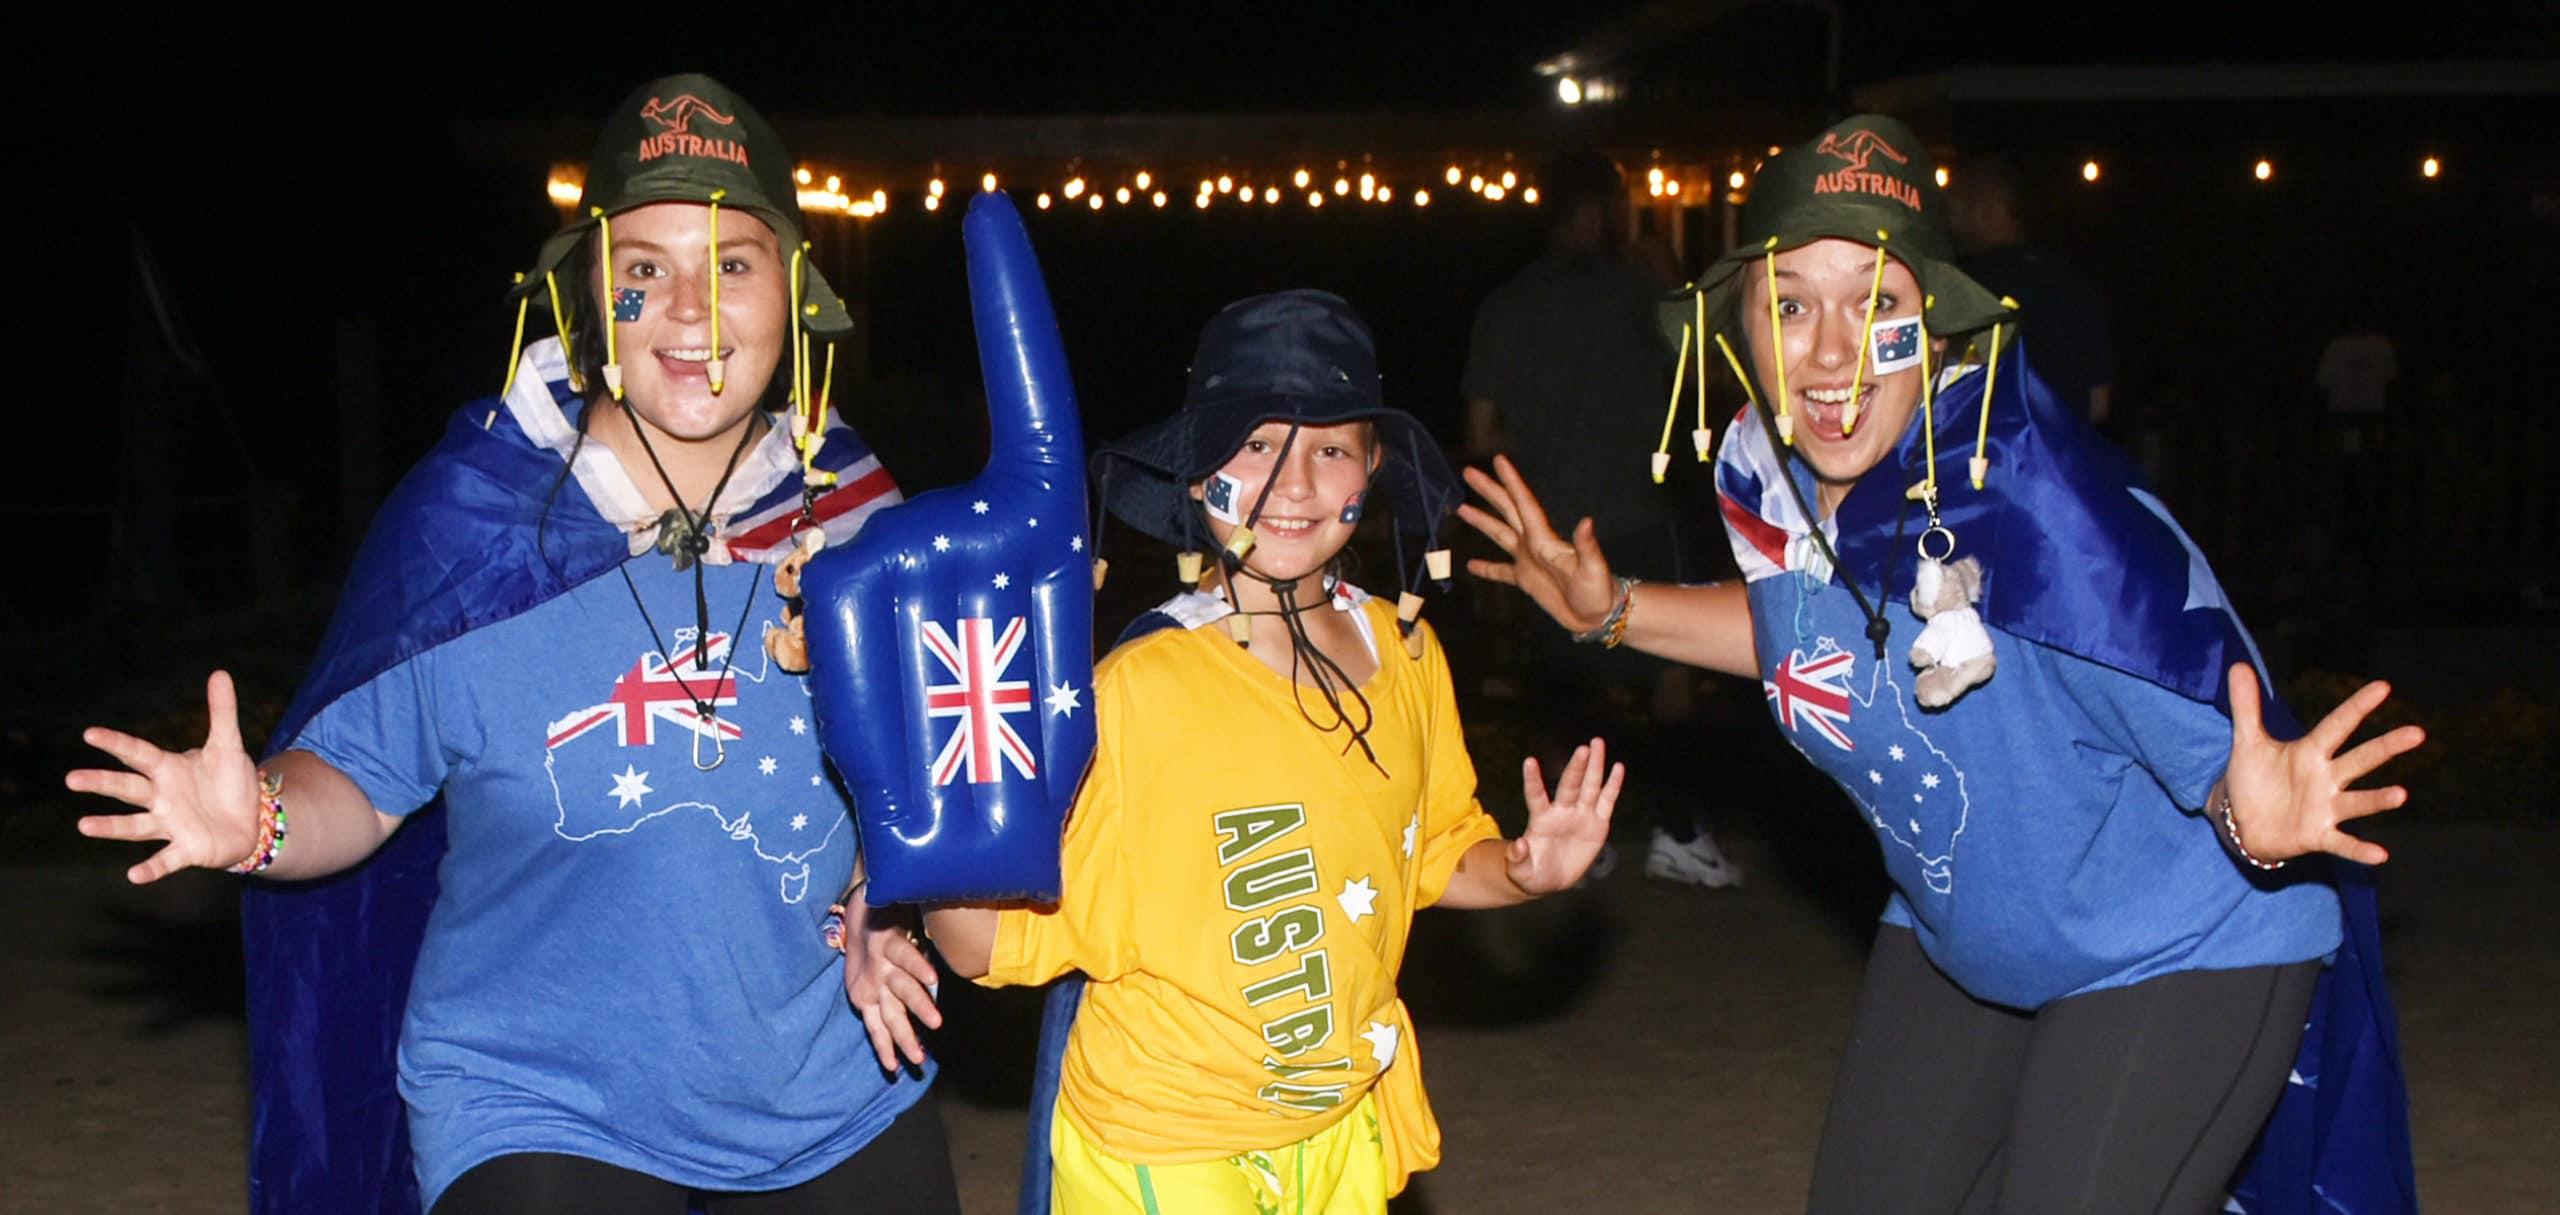 summer campers sporting Australia apparel